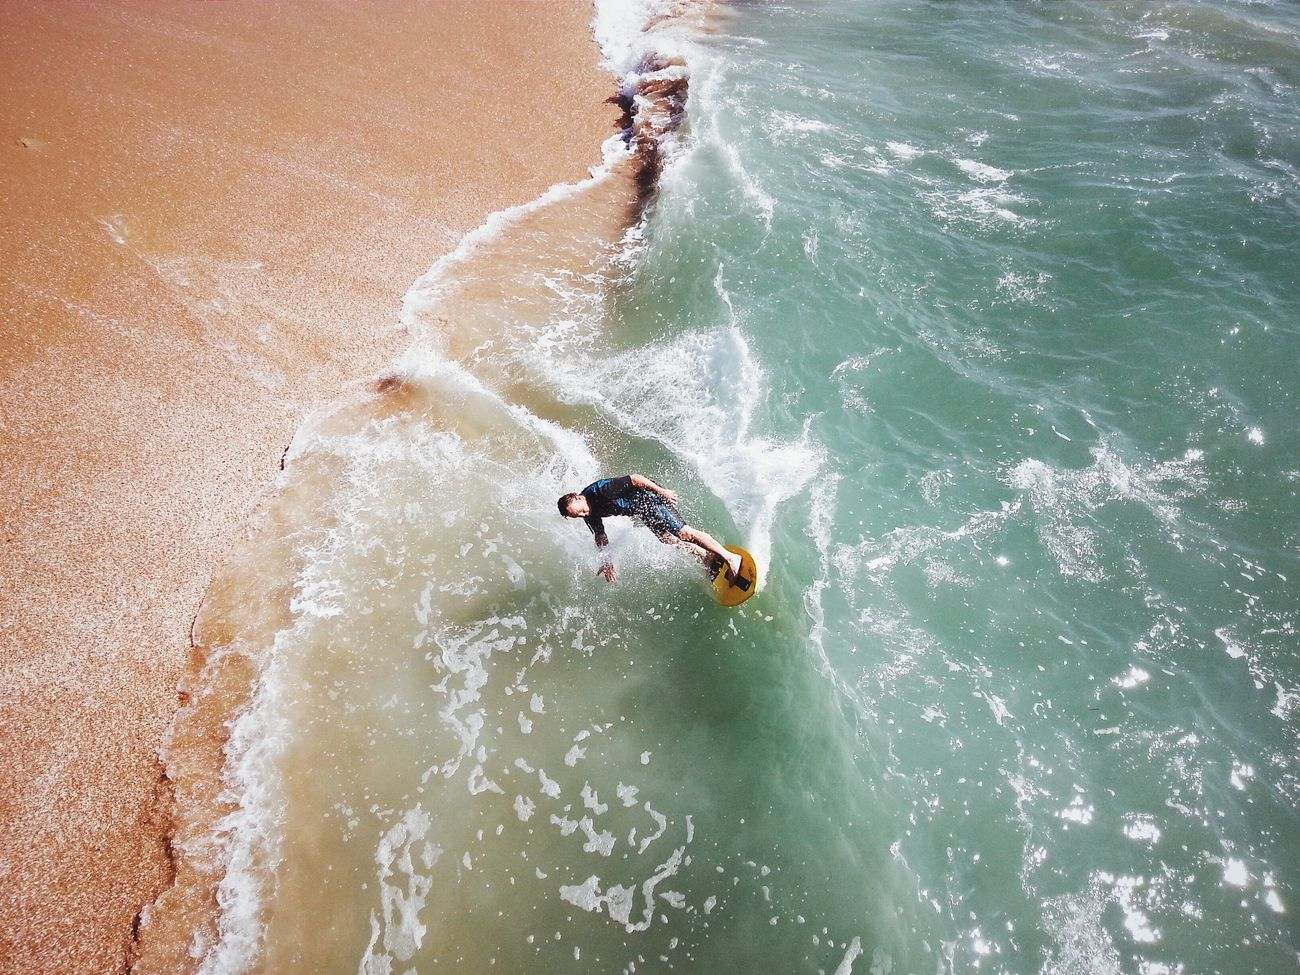 Coastal vibes. The Action Photographer - 2015 EyeEm Awards Beach Landscape How's The Weather Today? Everyday Joy Small And Swift The Great Outdoors - 2015 EyeEm Awards The Traveler - 2015 EyeEm Awards The Photojournalist - 2015 EyeEm Awards